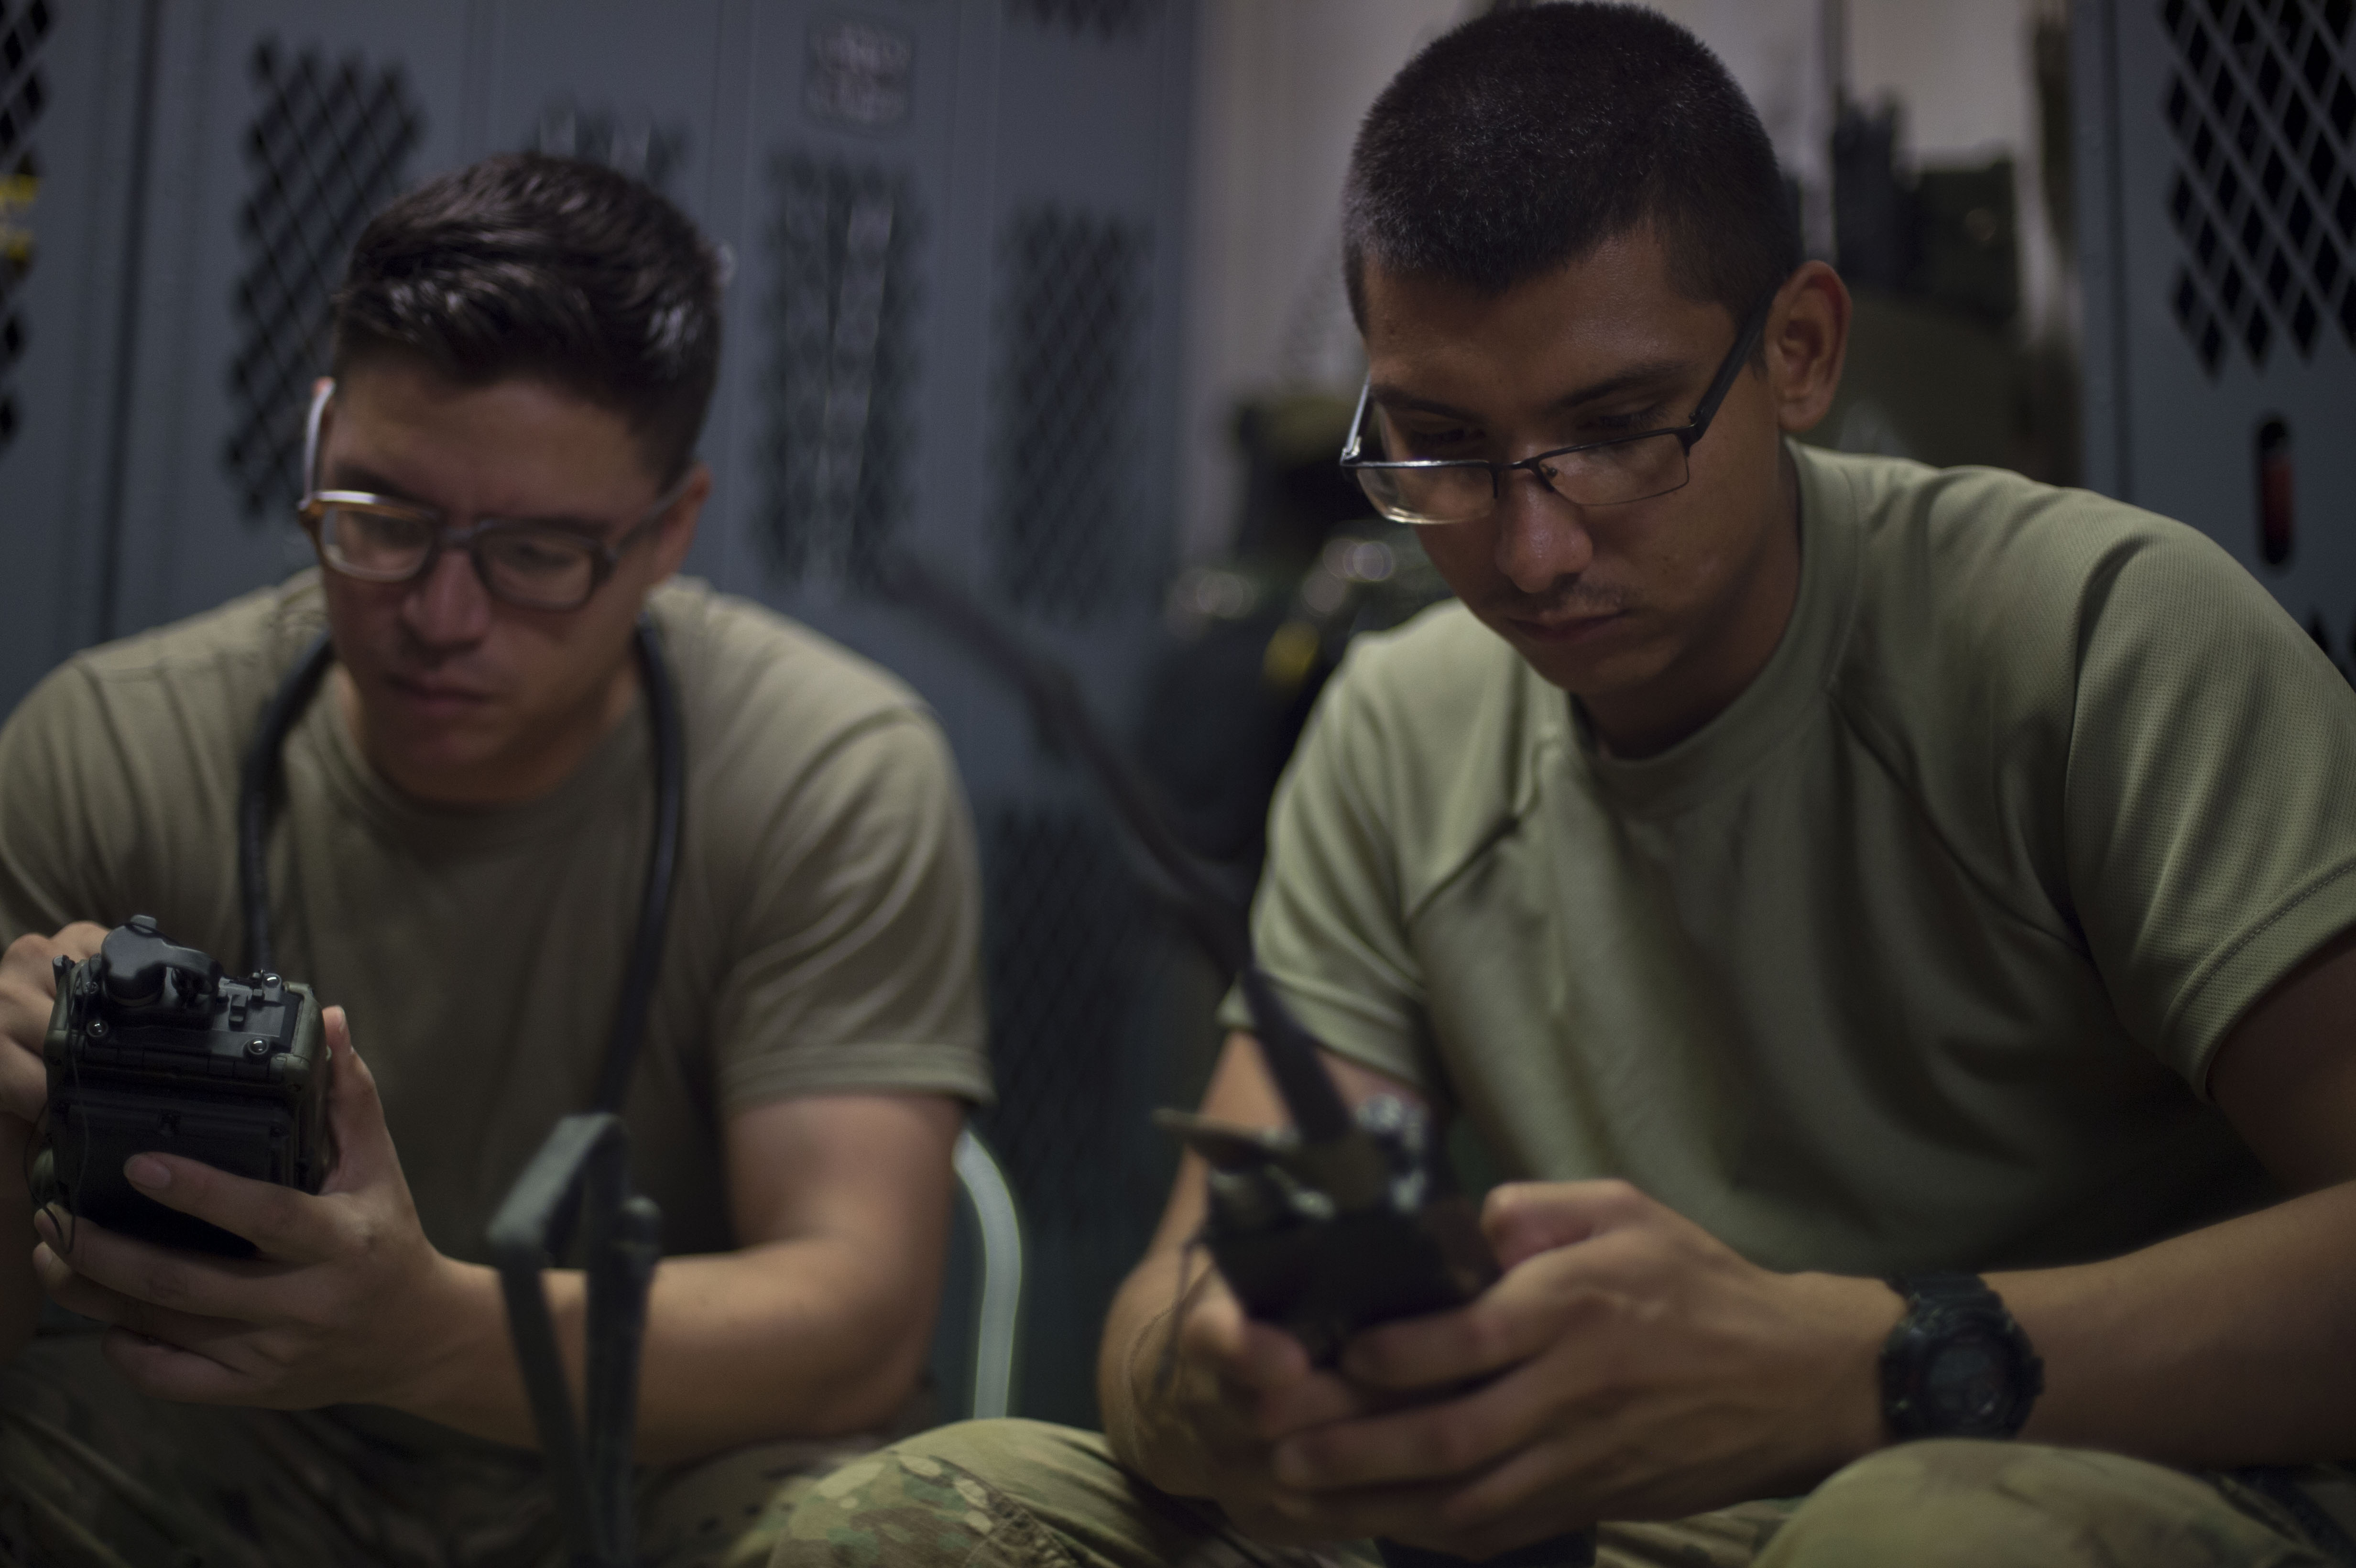 U.S. Army Sgt. Gary Mendieta and Pfc. Michael Umanzor, Combined Joint Task Force-Horn of Africa Quick Reaction Force team members, calibrate radios June 20, 2016, at Camp Lemonnier Djibouti. Umanzor, a native of Lake Worth, Fla., and Mendieta, a native of Boynton Beach, Fla., are a part of the 1st Battalion, 124th Infantry Regiment that assumed the QRF mission in May. (U.S. Air Force photo by Staff Sgt. Eric Summers Jr.)